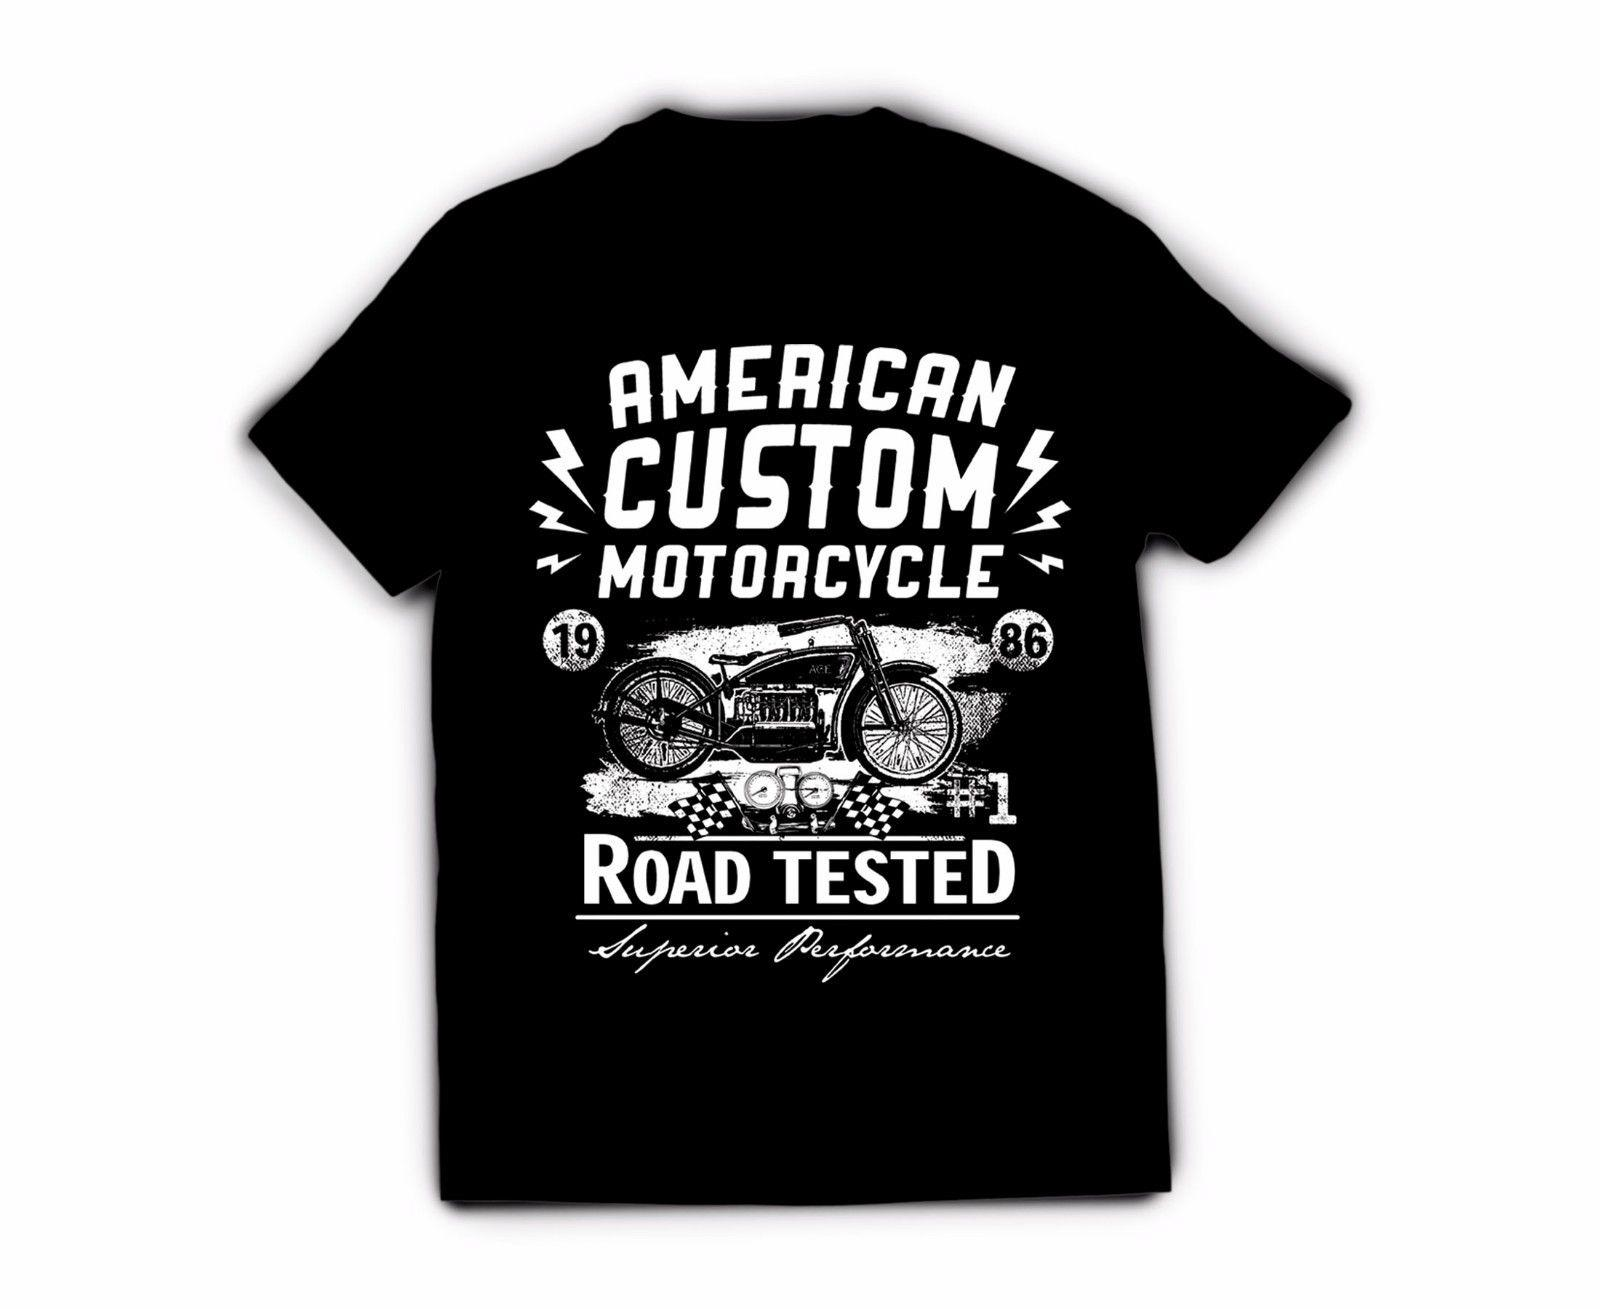 cb6ffbf51 Men'S T Shirt American Custom Motorcycle Design F3 Black Tee Shirt On T  Shirt Hilarious Tee Shirts From Hiphoptshirt, $13.19| DHgate.Com